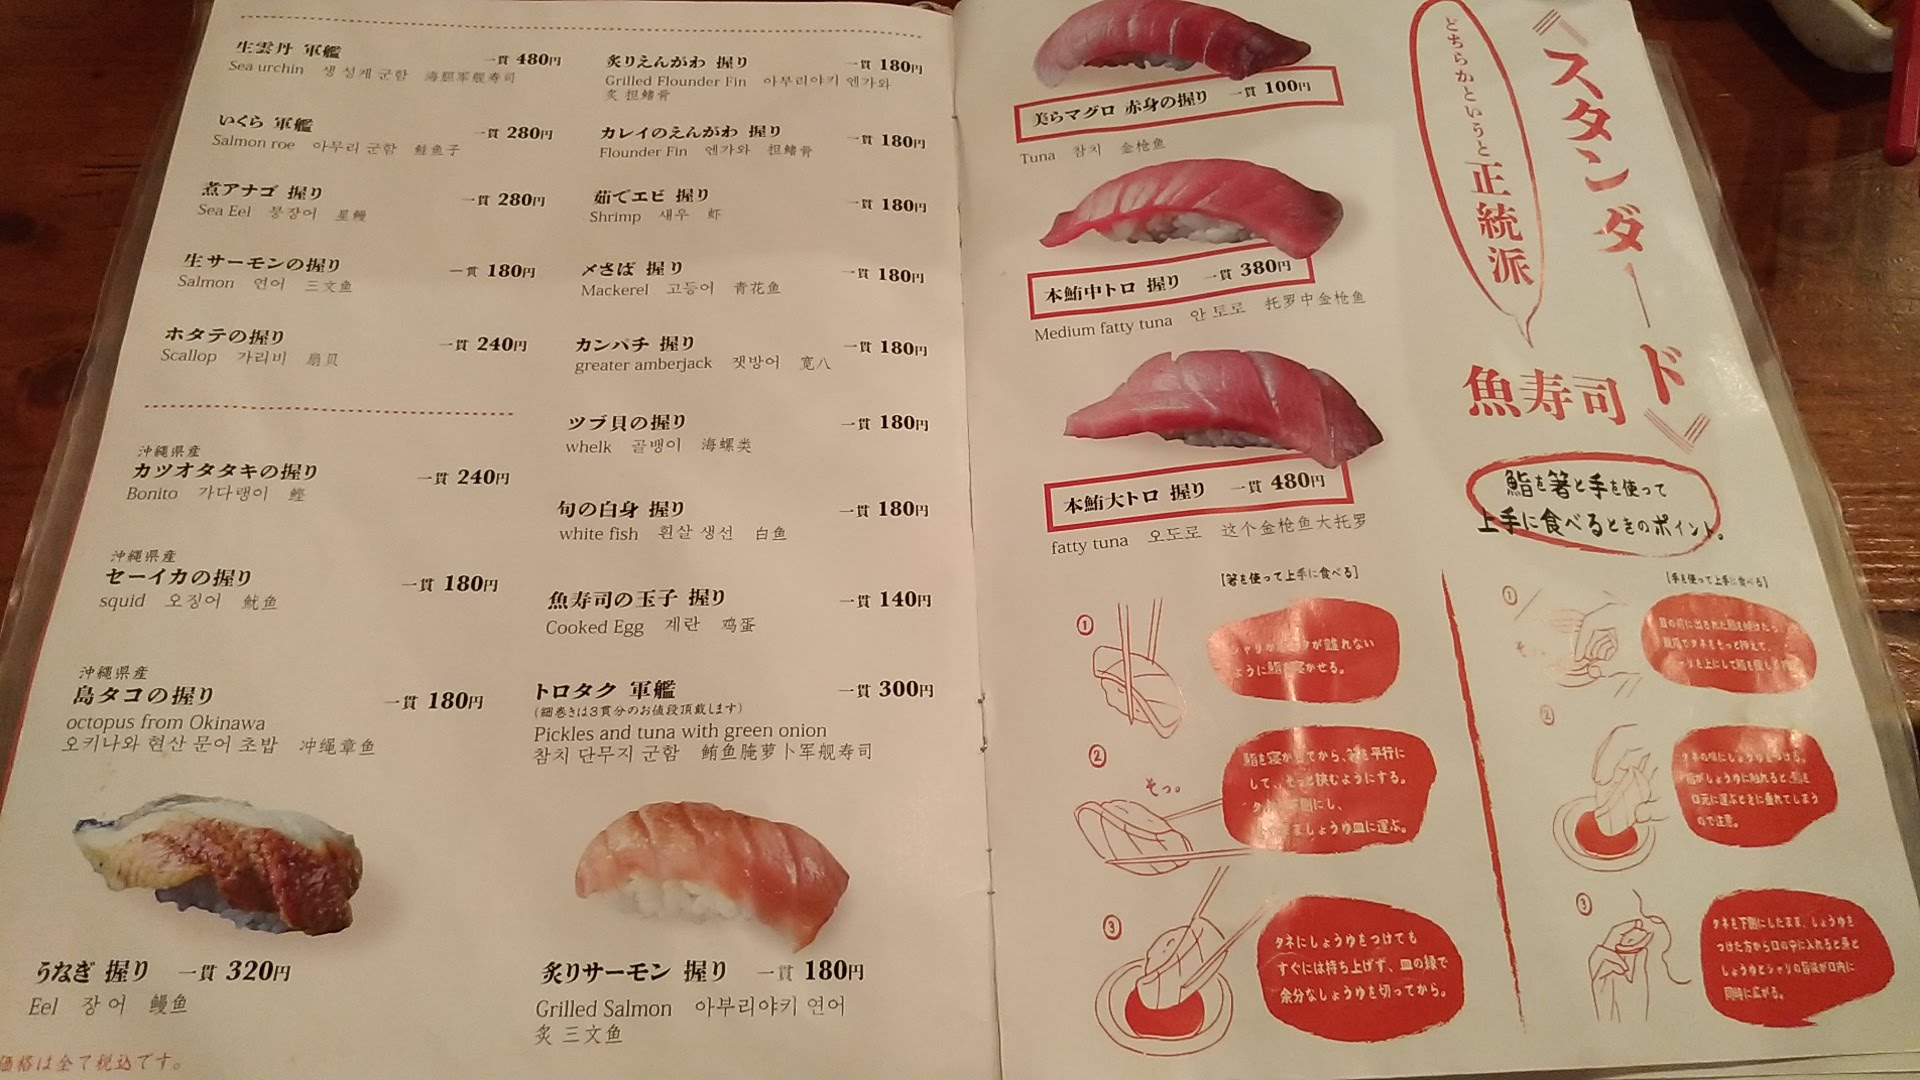 The menu of Sakana sushi 5